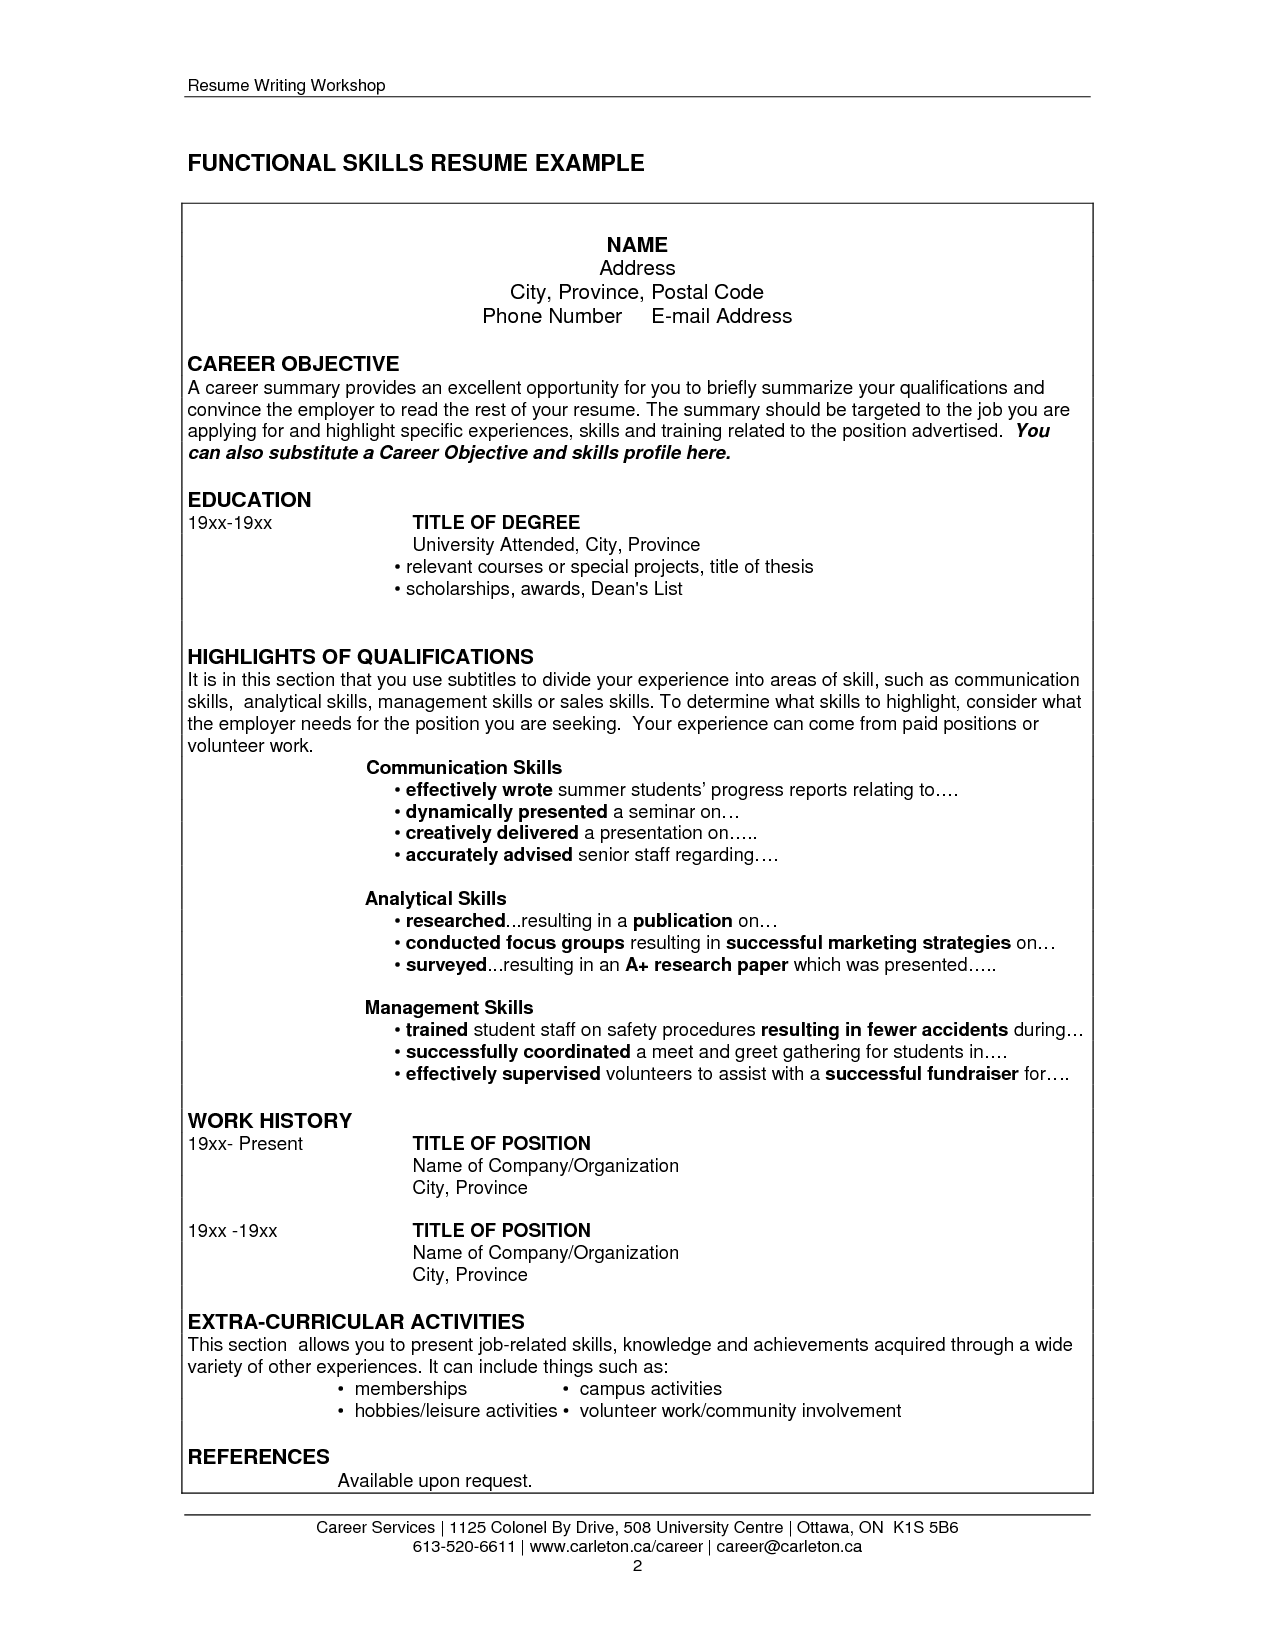 Management Skills Resume Impressive Image Result For Skills Resume Format Business Pinterest